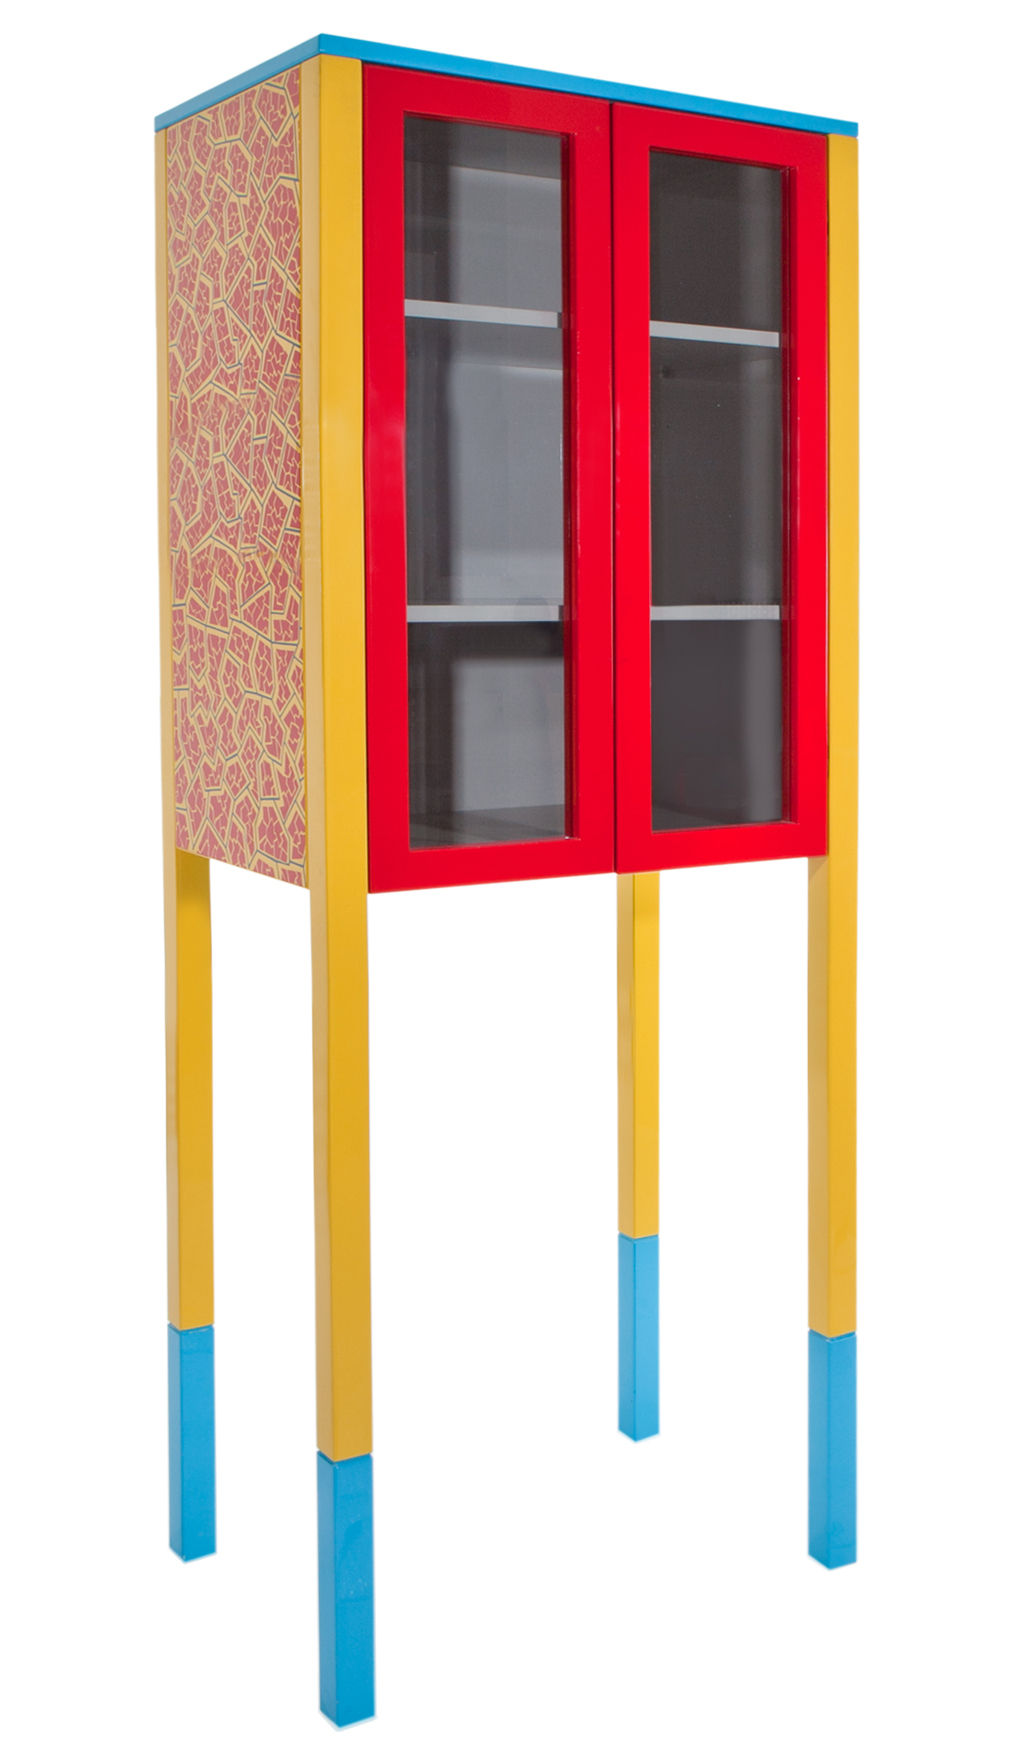 Furniture - Shelves & Storage Furniture - D'Antibes Cabinet by Memphis Milano - Yellow, red & blue - Glass, Lacquered wood